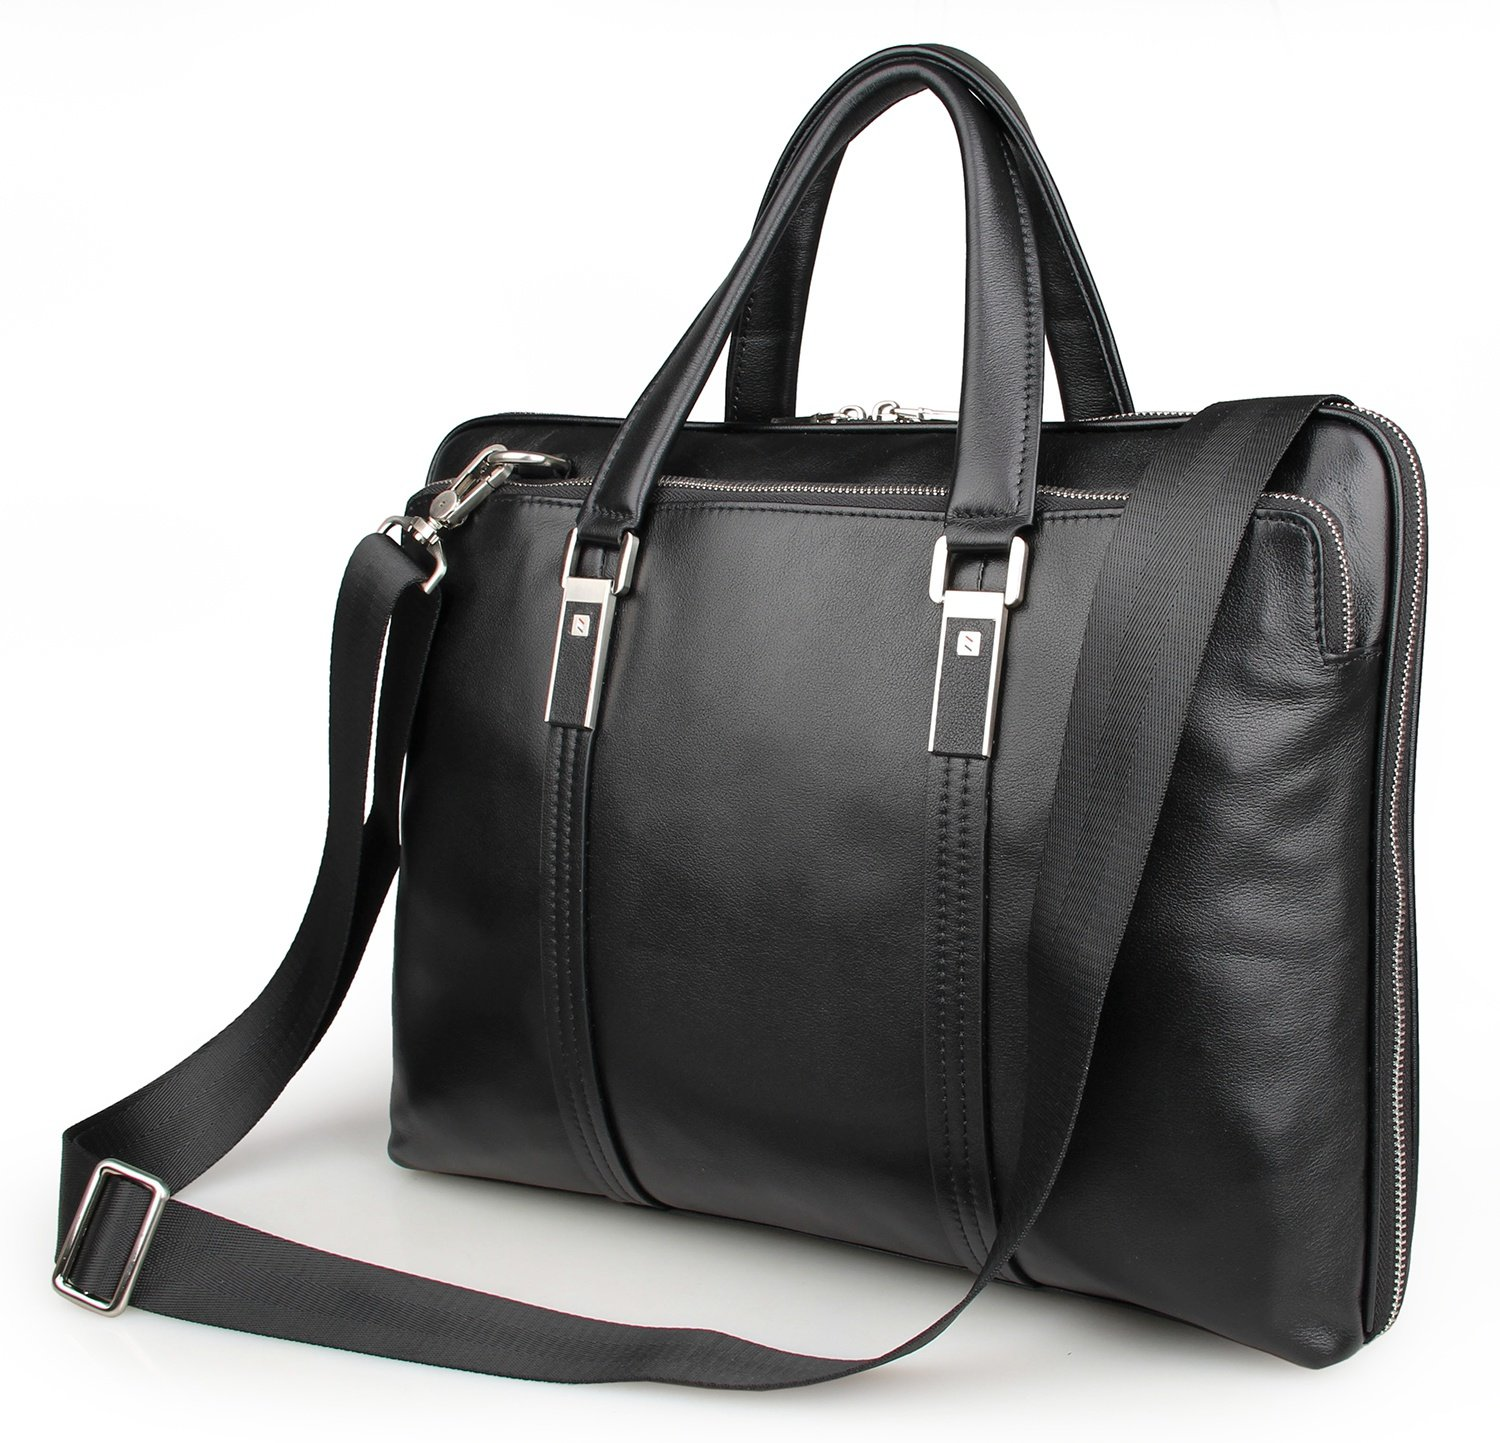 LXFF Men's Calfskin Leather Business Briefcase Bag 14 or 15 Inch Laptop Tote Bag Black